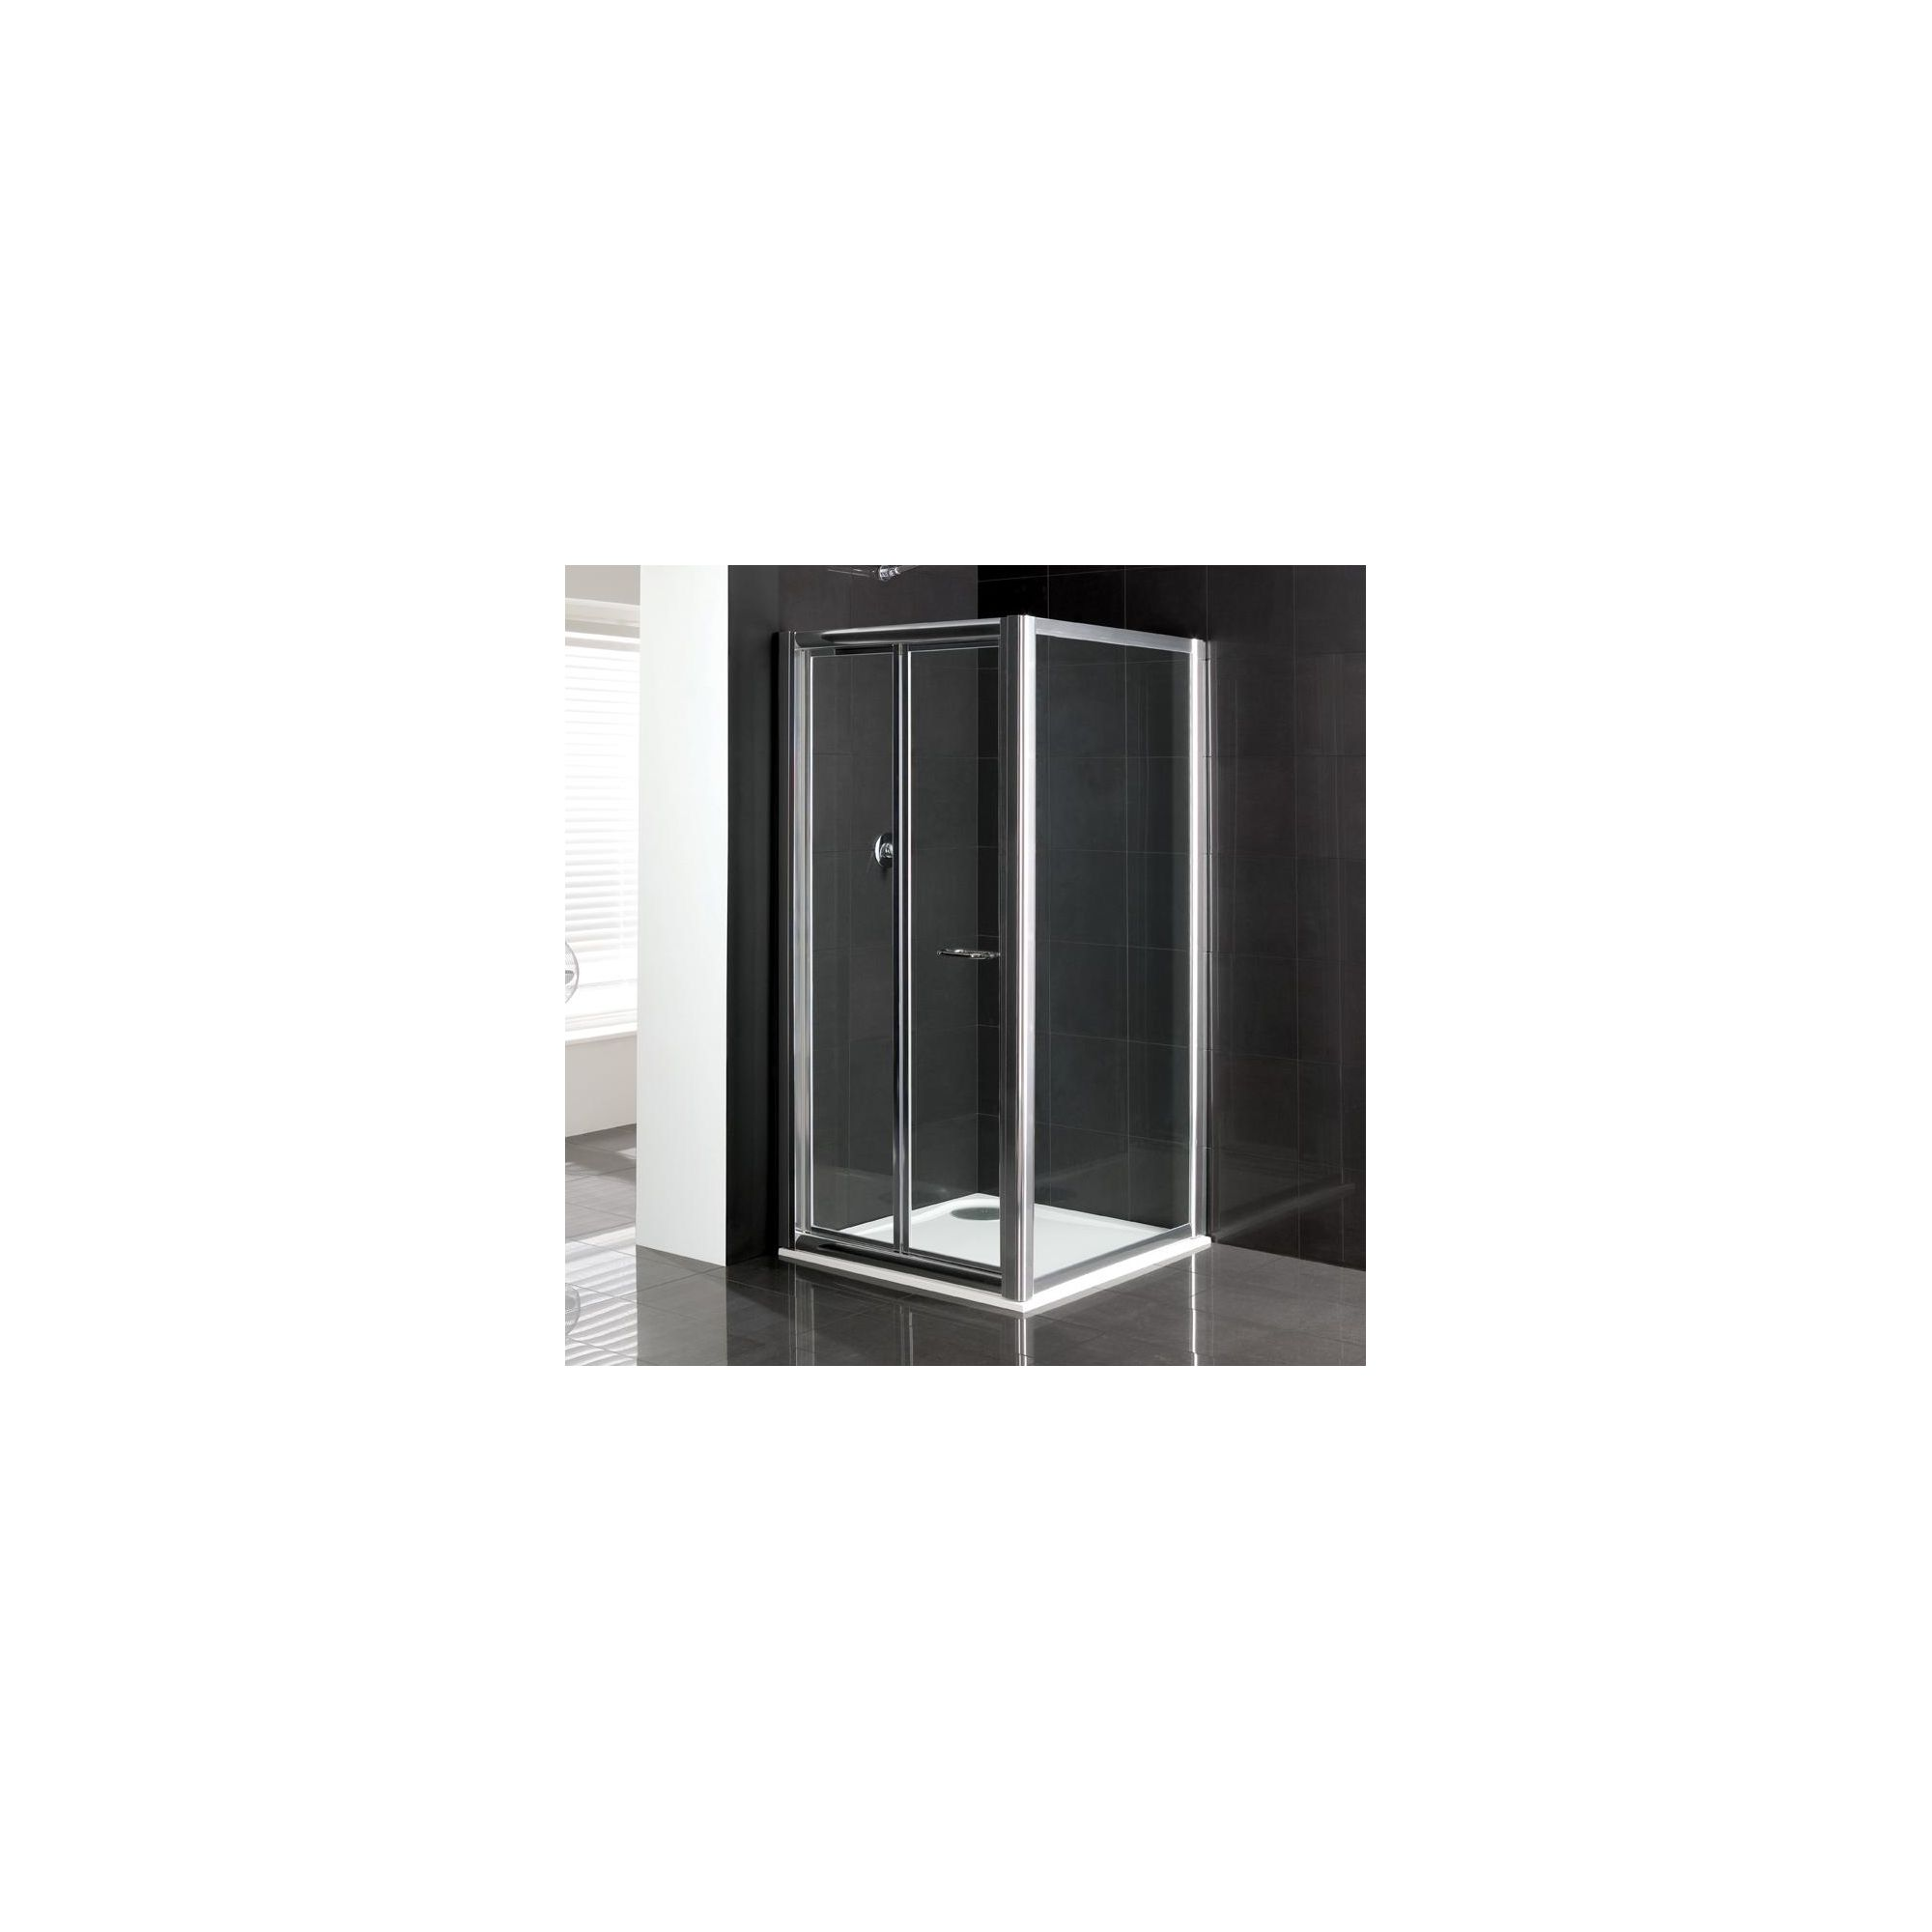 Duchy Elite Silver Bi-Fold Door Shower Enclosure with Towel Rail, 900mm x 760mm, Standard Tray, 6mm Glass at Tesco Direct